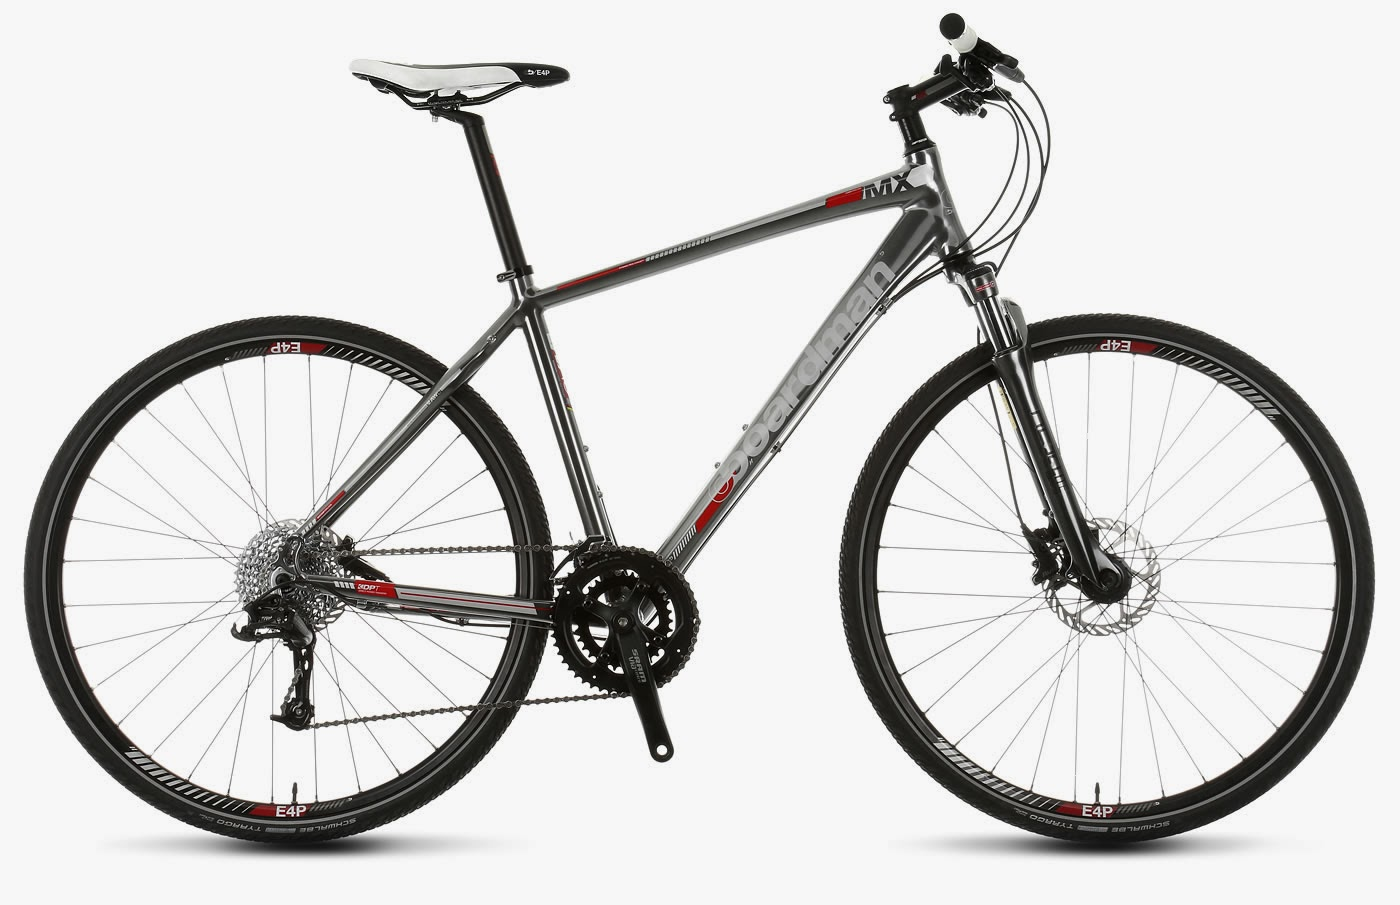 Boardman MX Hybrid bicycle